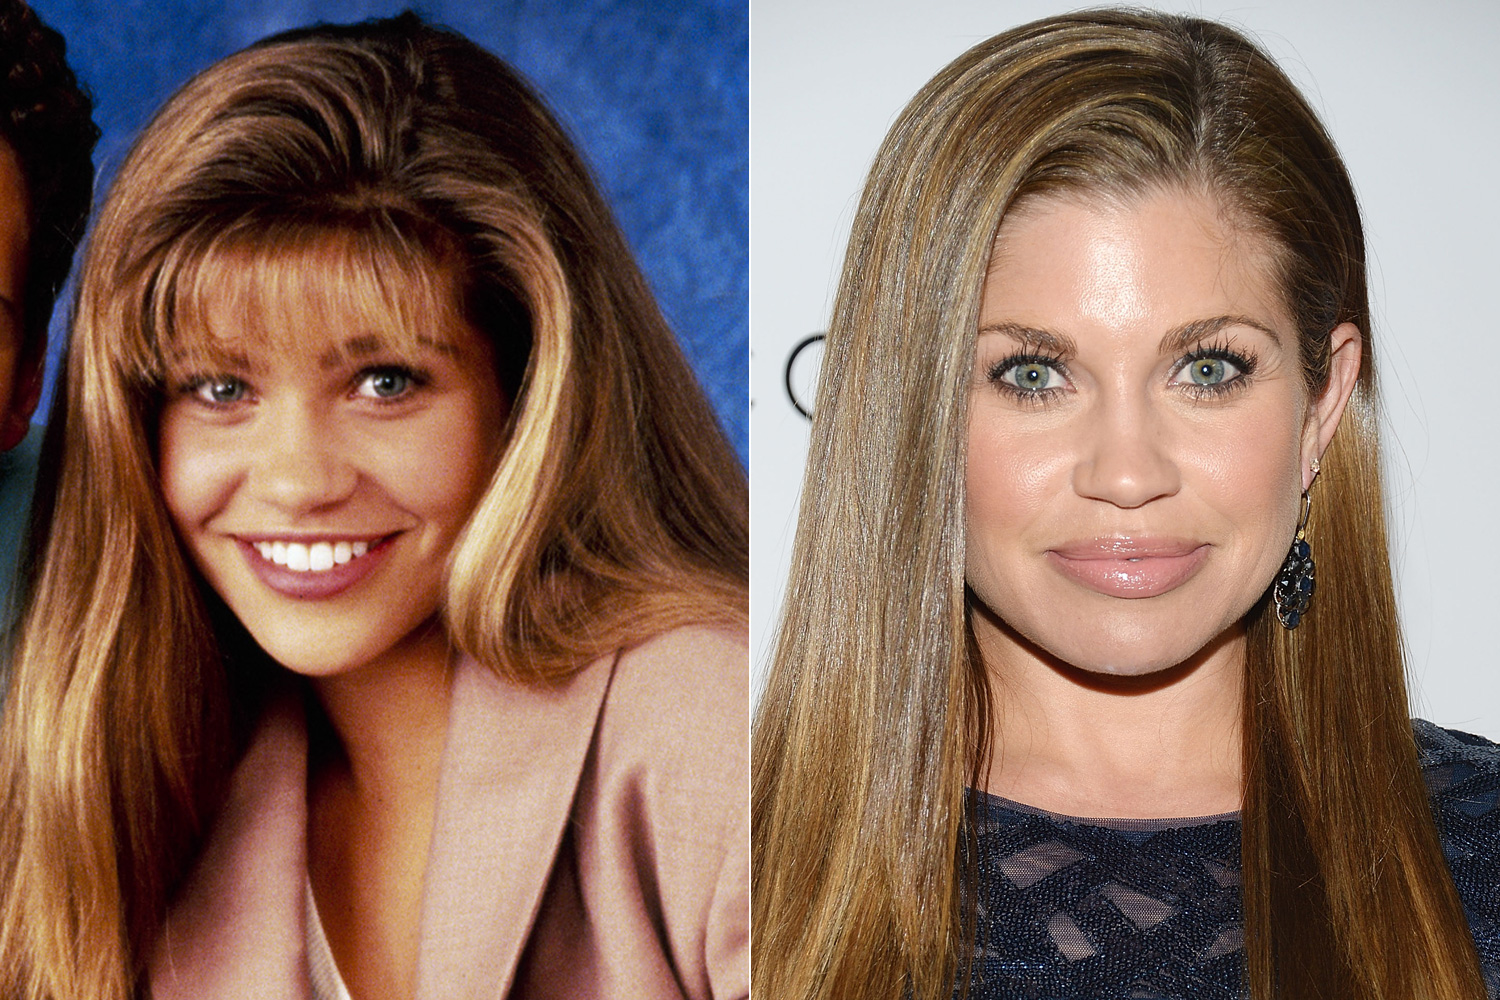 Danielle Fishel will also be reprising her 'Boy Meets World' role as Topanga Lawrence in the spinoff. No official word yet on whether she'll be the joyfully bizarre Topanga of Season 1 or the reasonable one of subsequent seasons — smart money is on the latter.